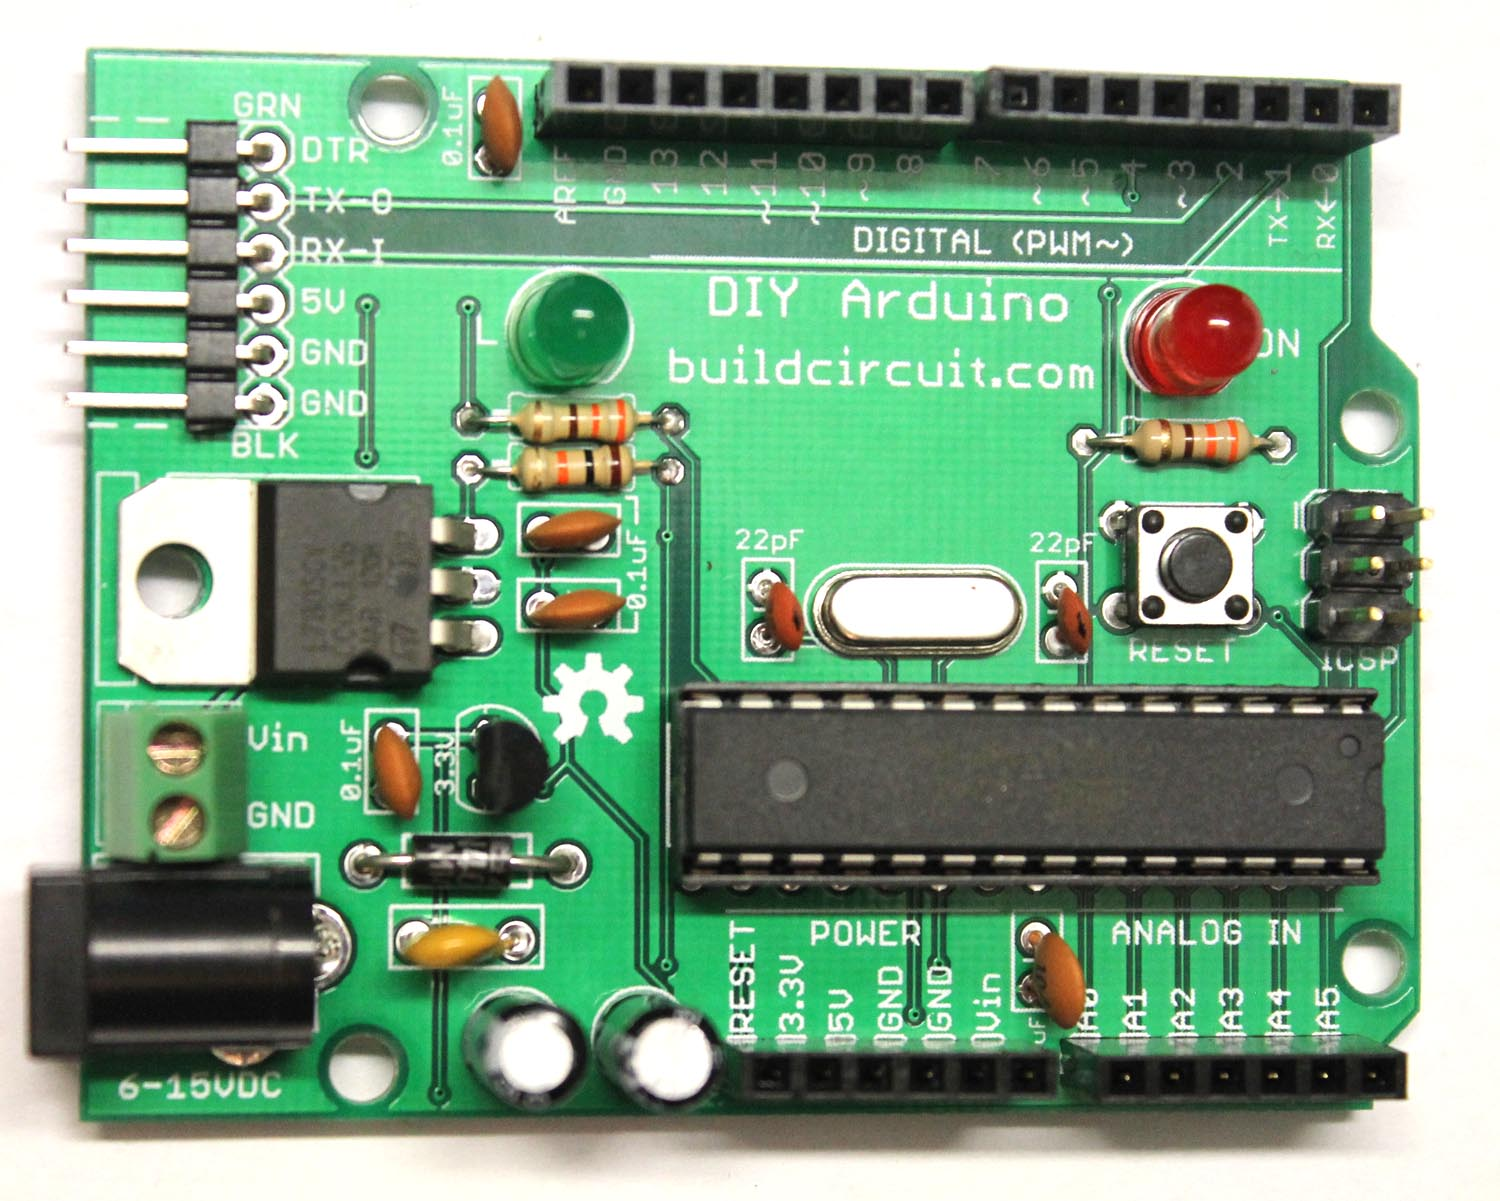 Gallery Diy Arduino Kit Buildcircuit Electronics How To Use The Clap Switch Build Circuit 19 Is Now Ready